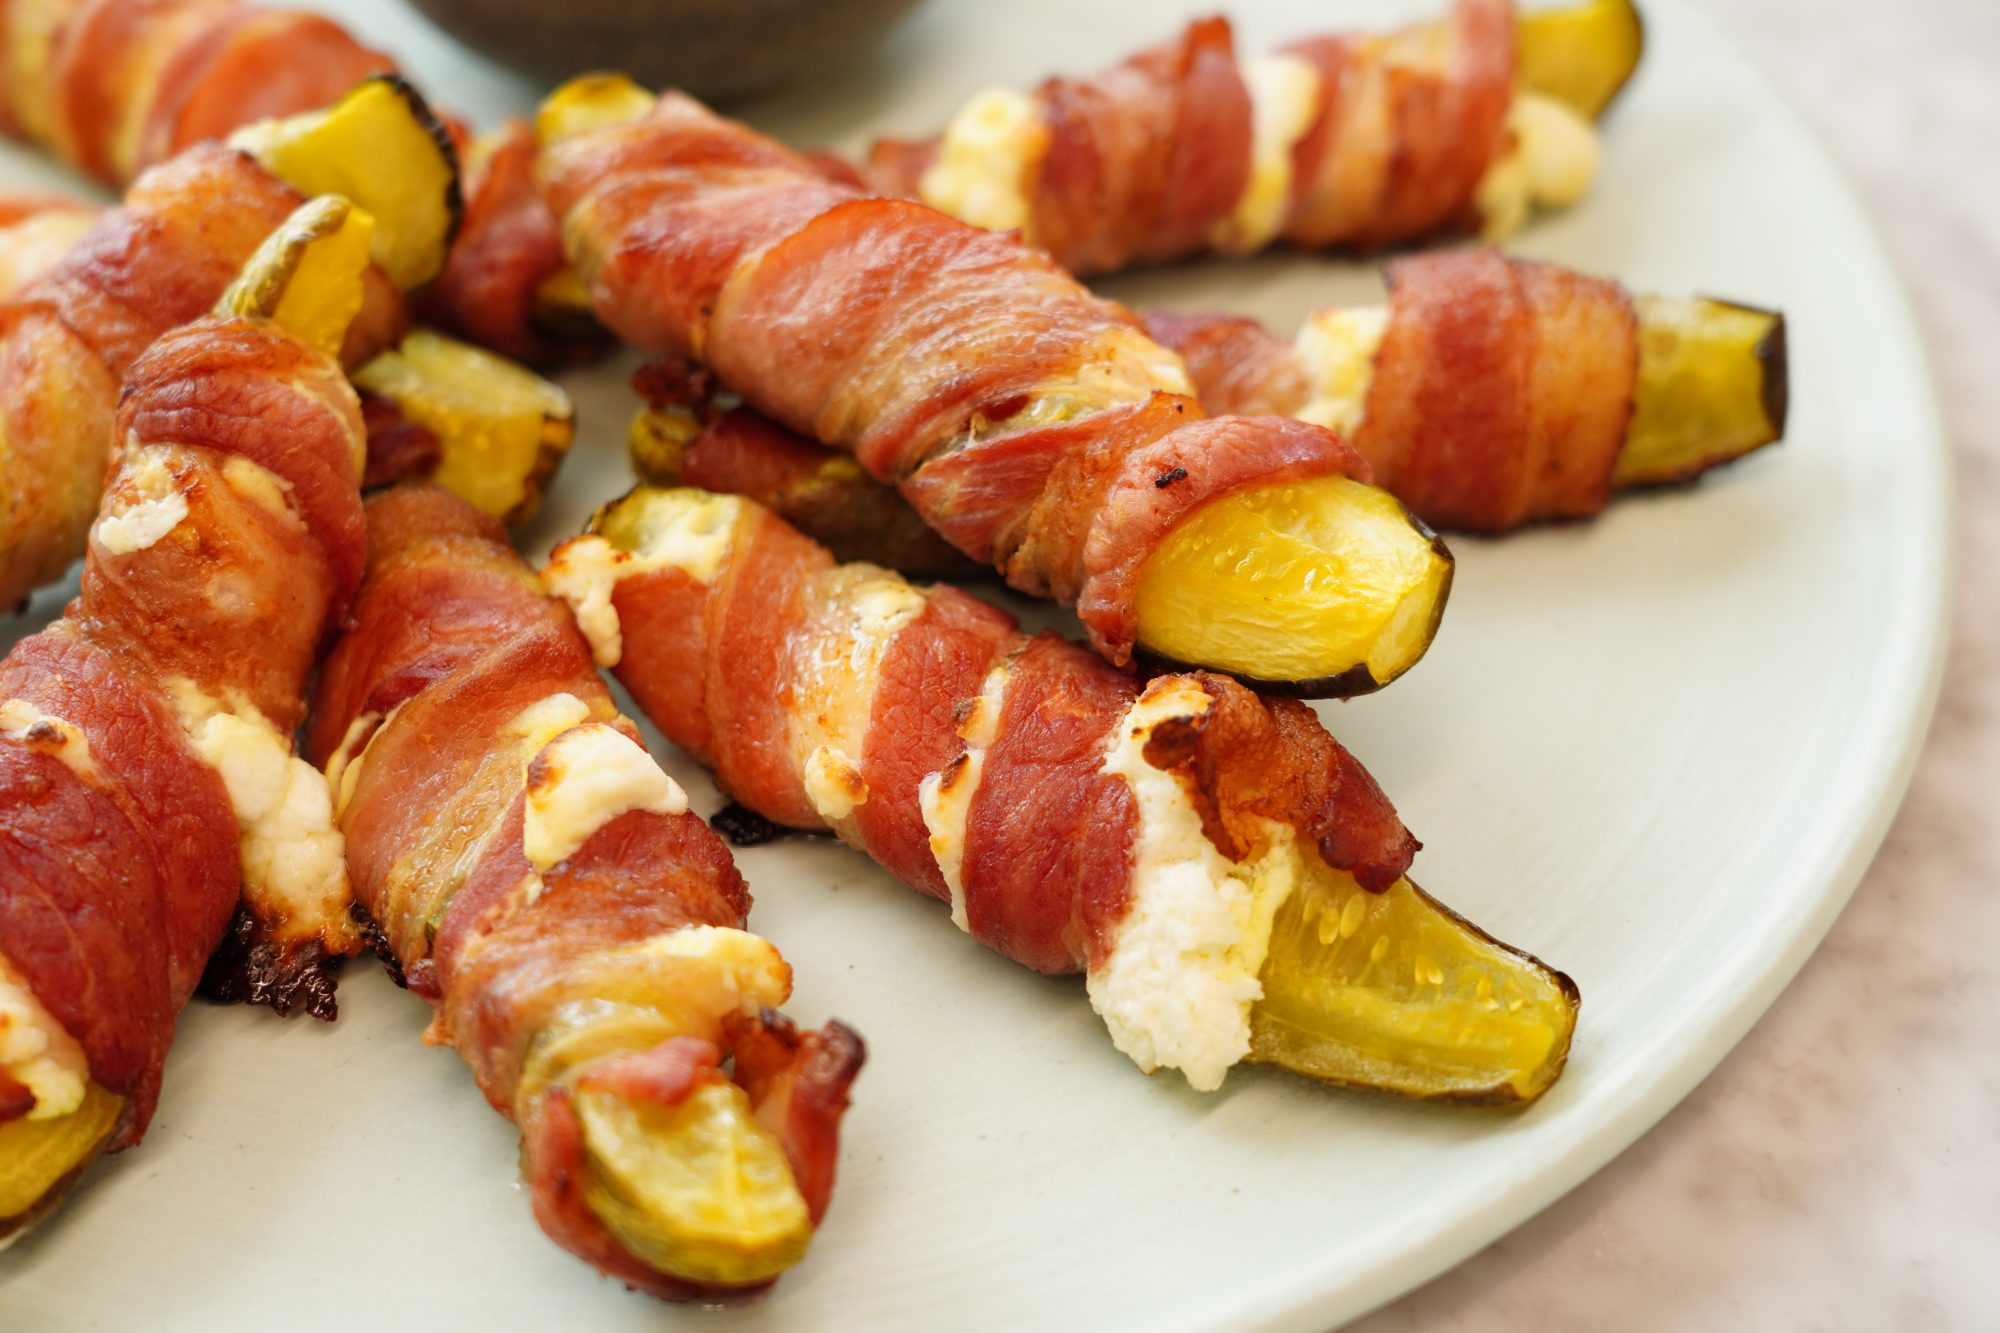 a plate of Bacon-Wrapped Pickles with cream cheese